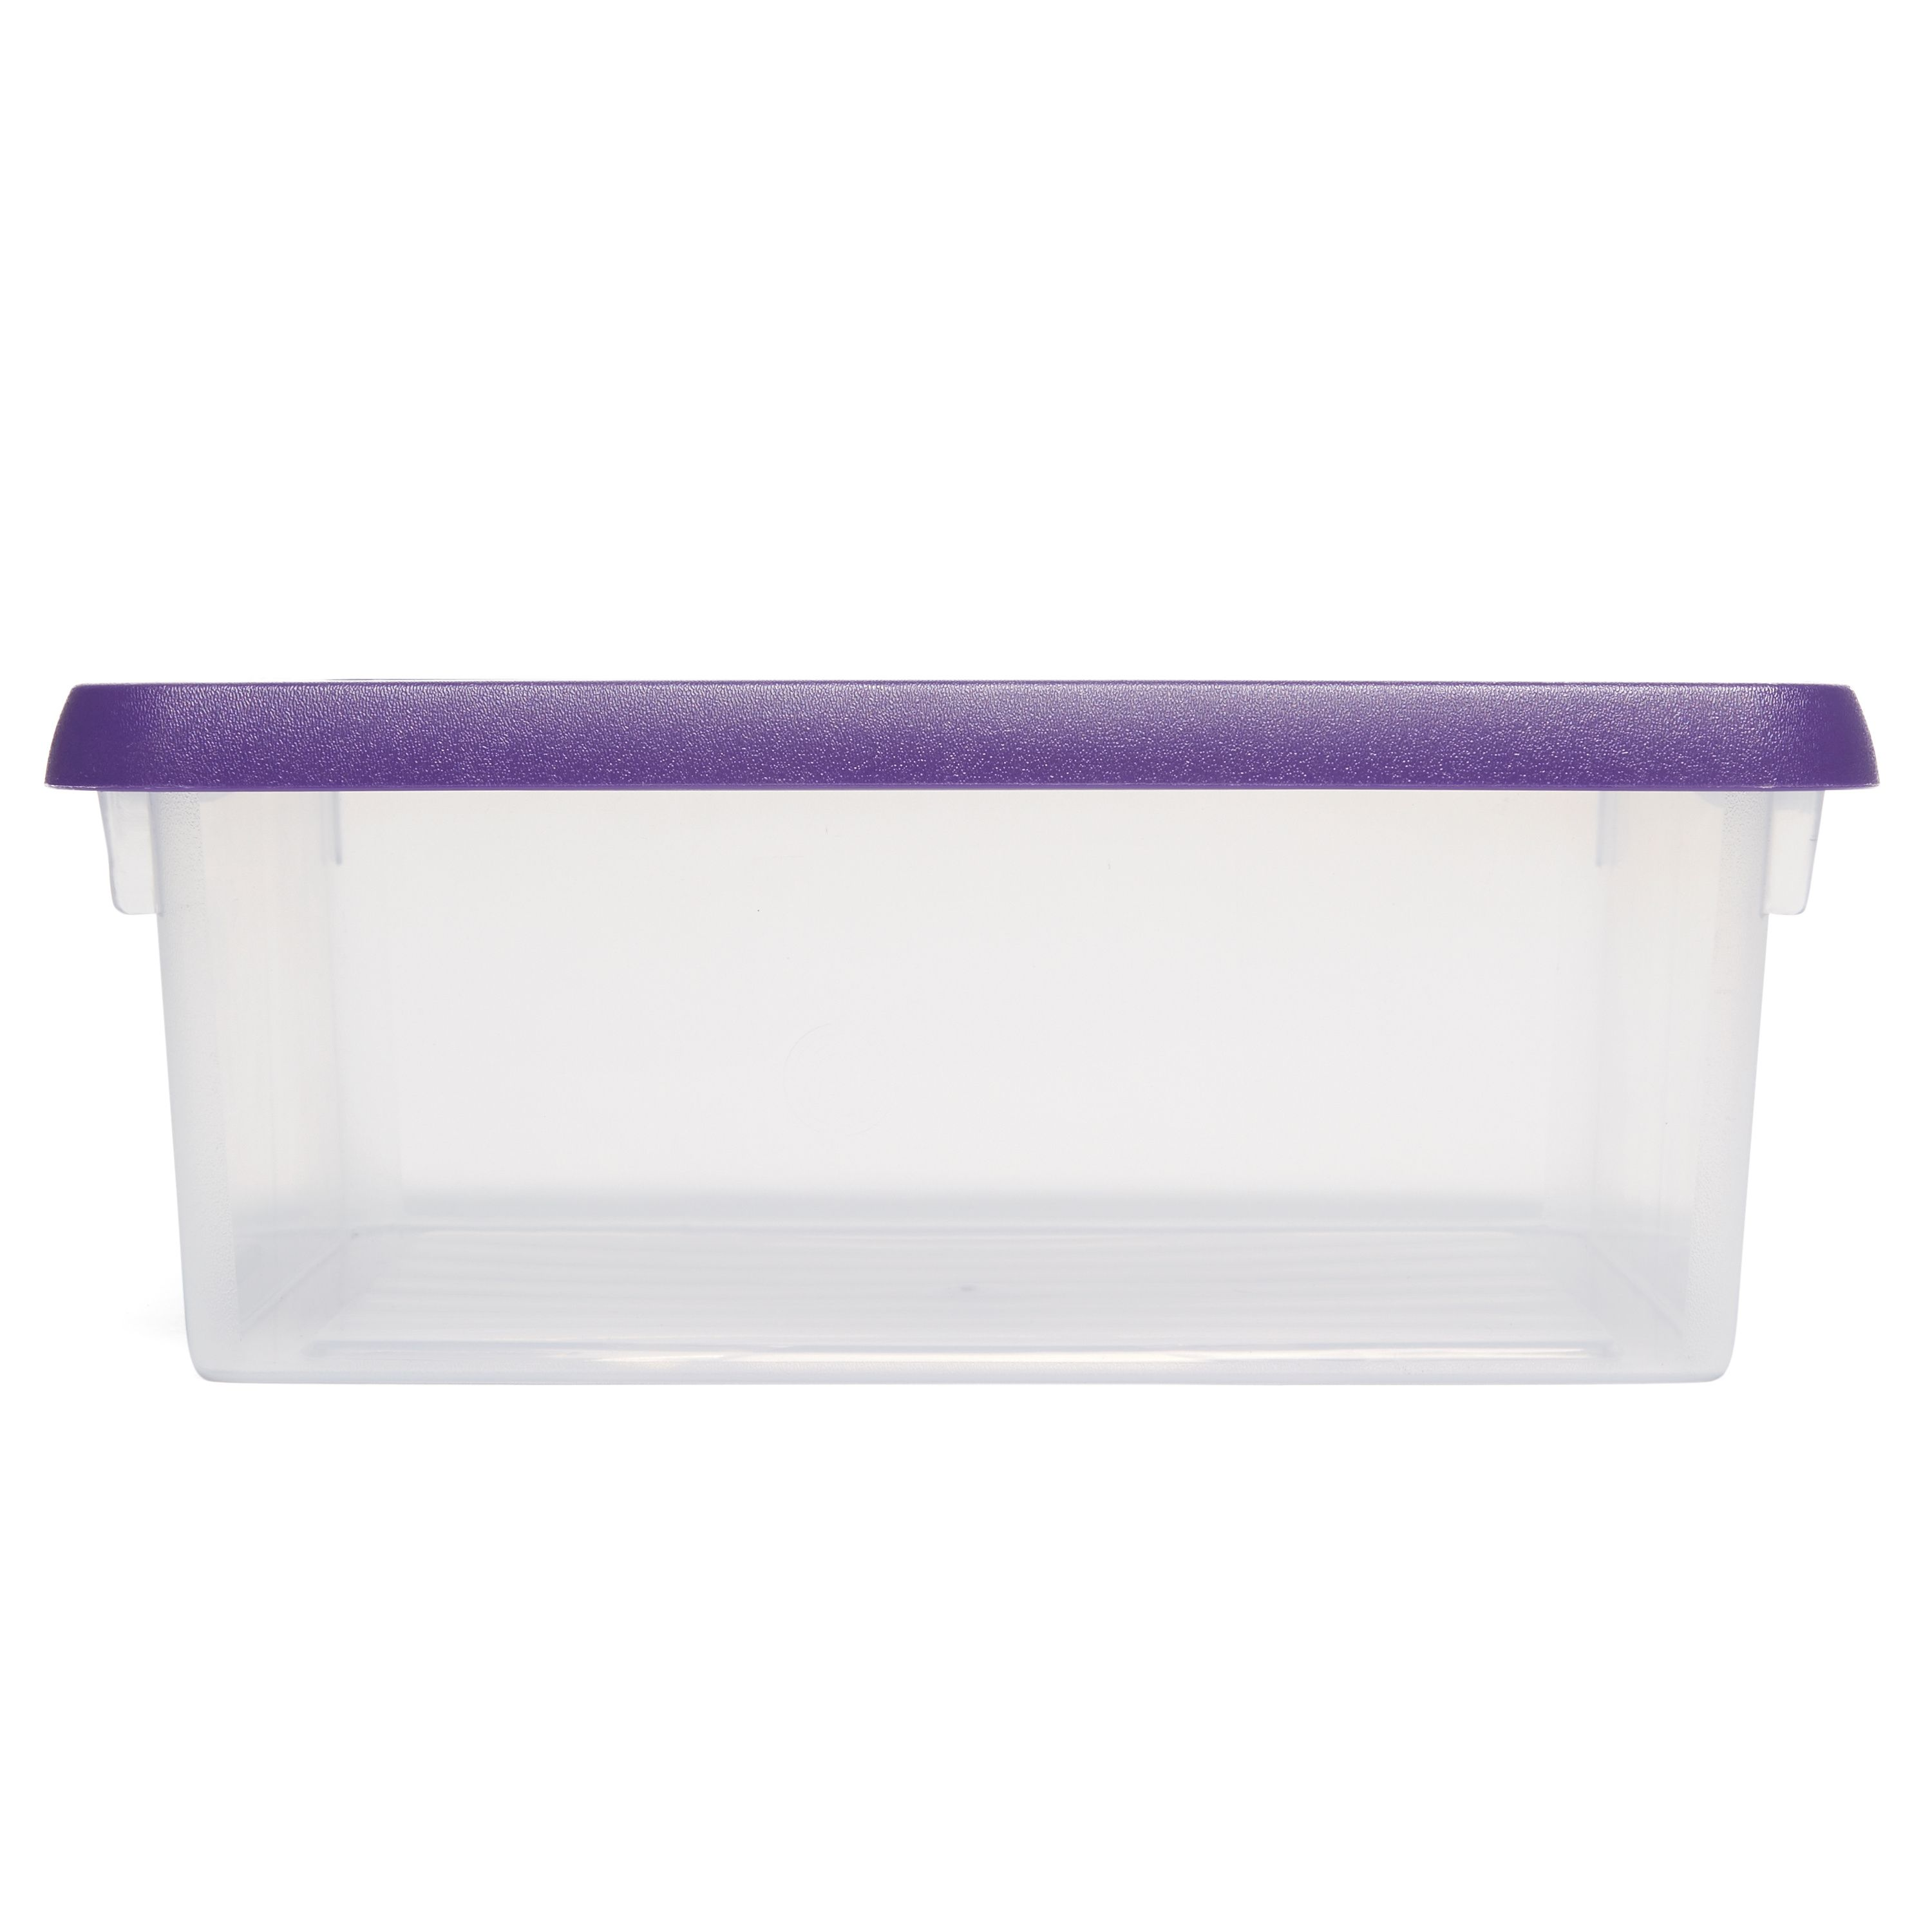 WHAM Whambox Storage Box 3.5L